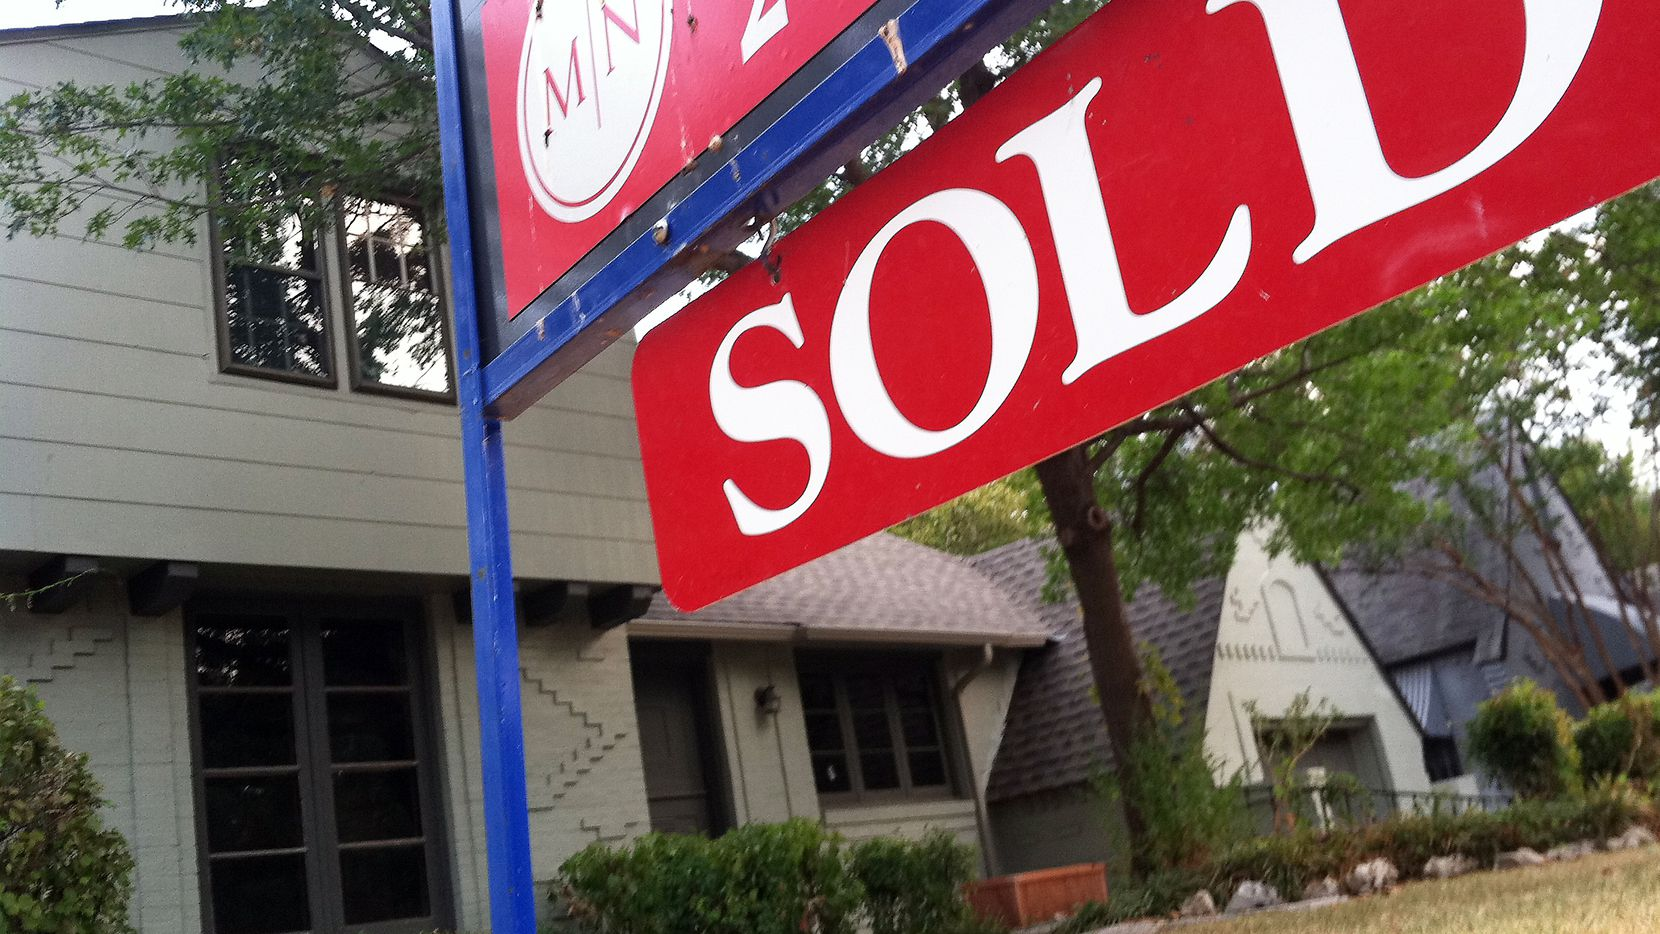 More than a quarter of Dallas-area homebuyers pay more than